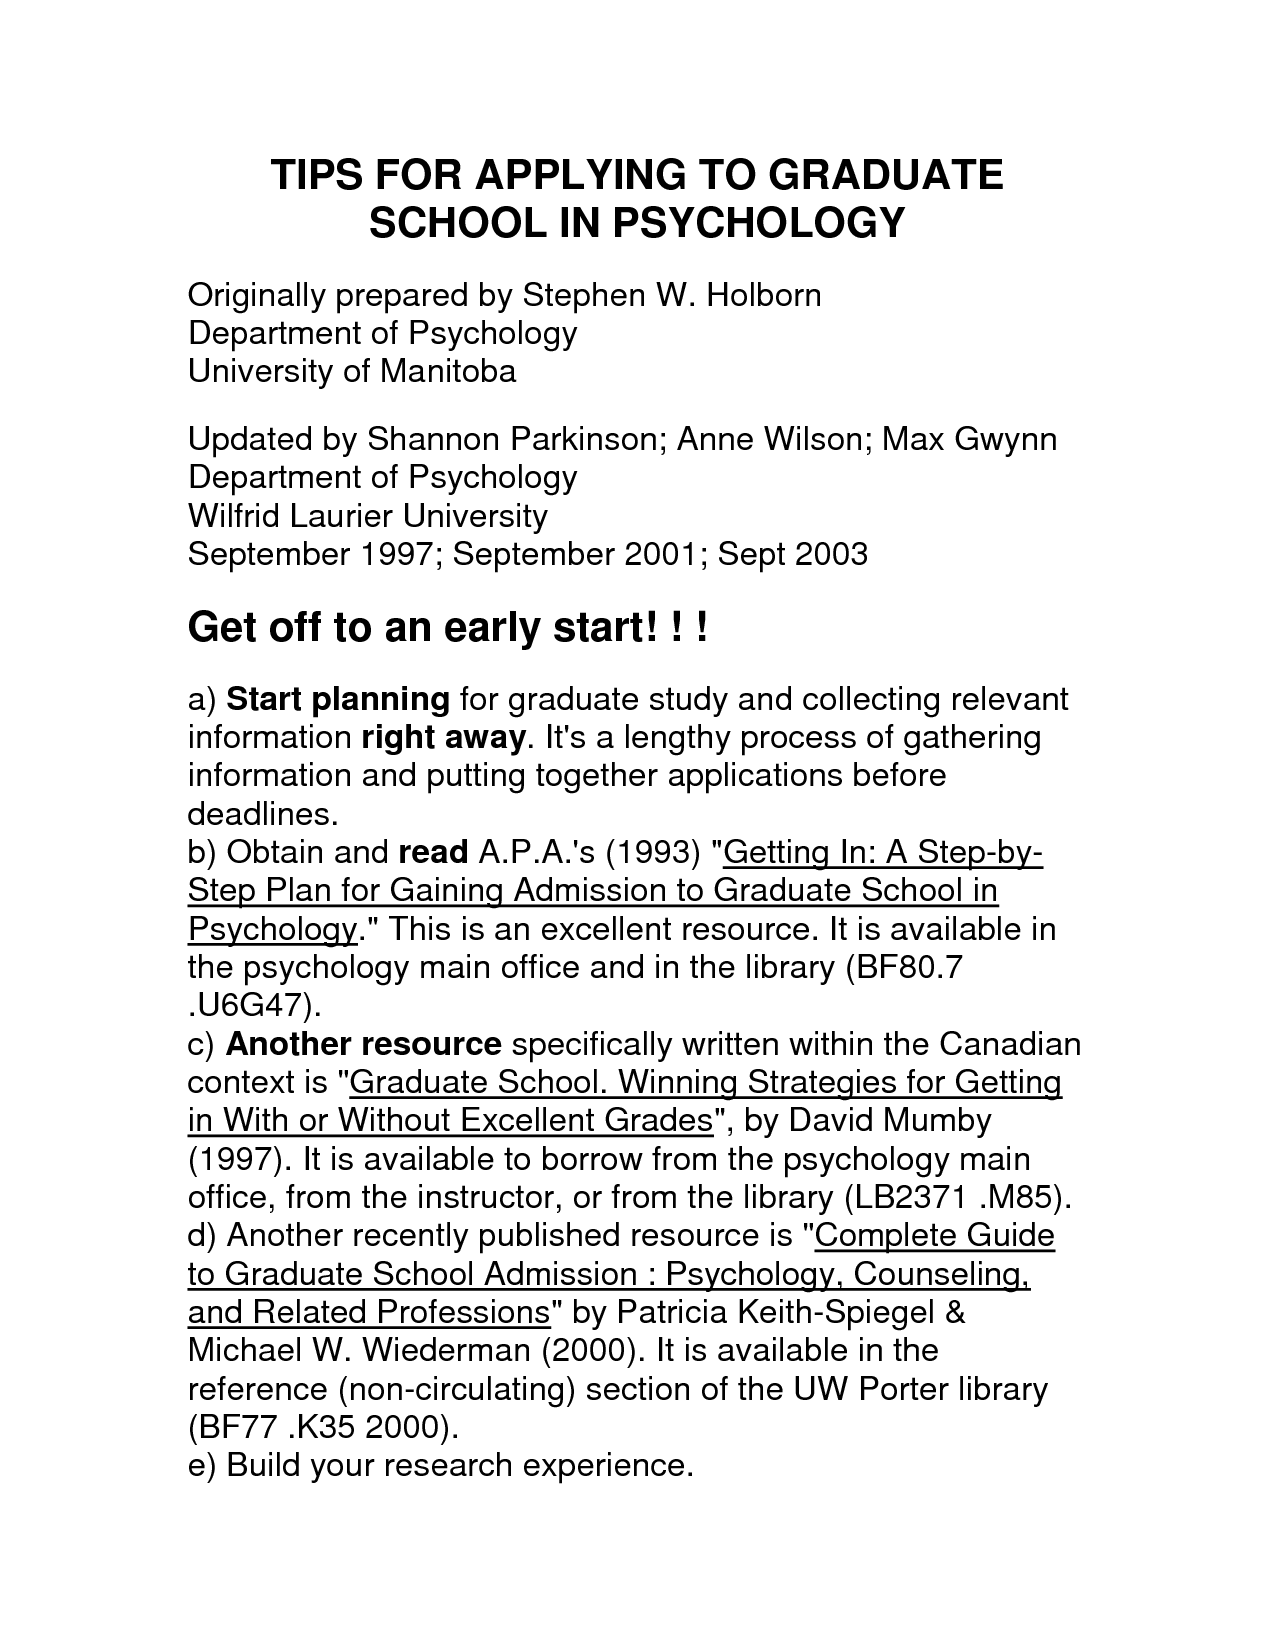 Psychology graduate school resume httpresumecareerfo writing a cover letter for graduate school application huanyiicom altavistaventures Choice Image